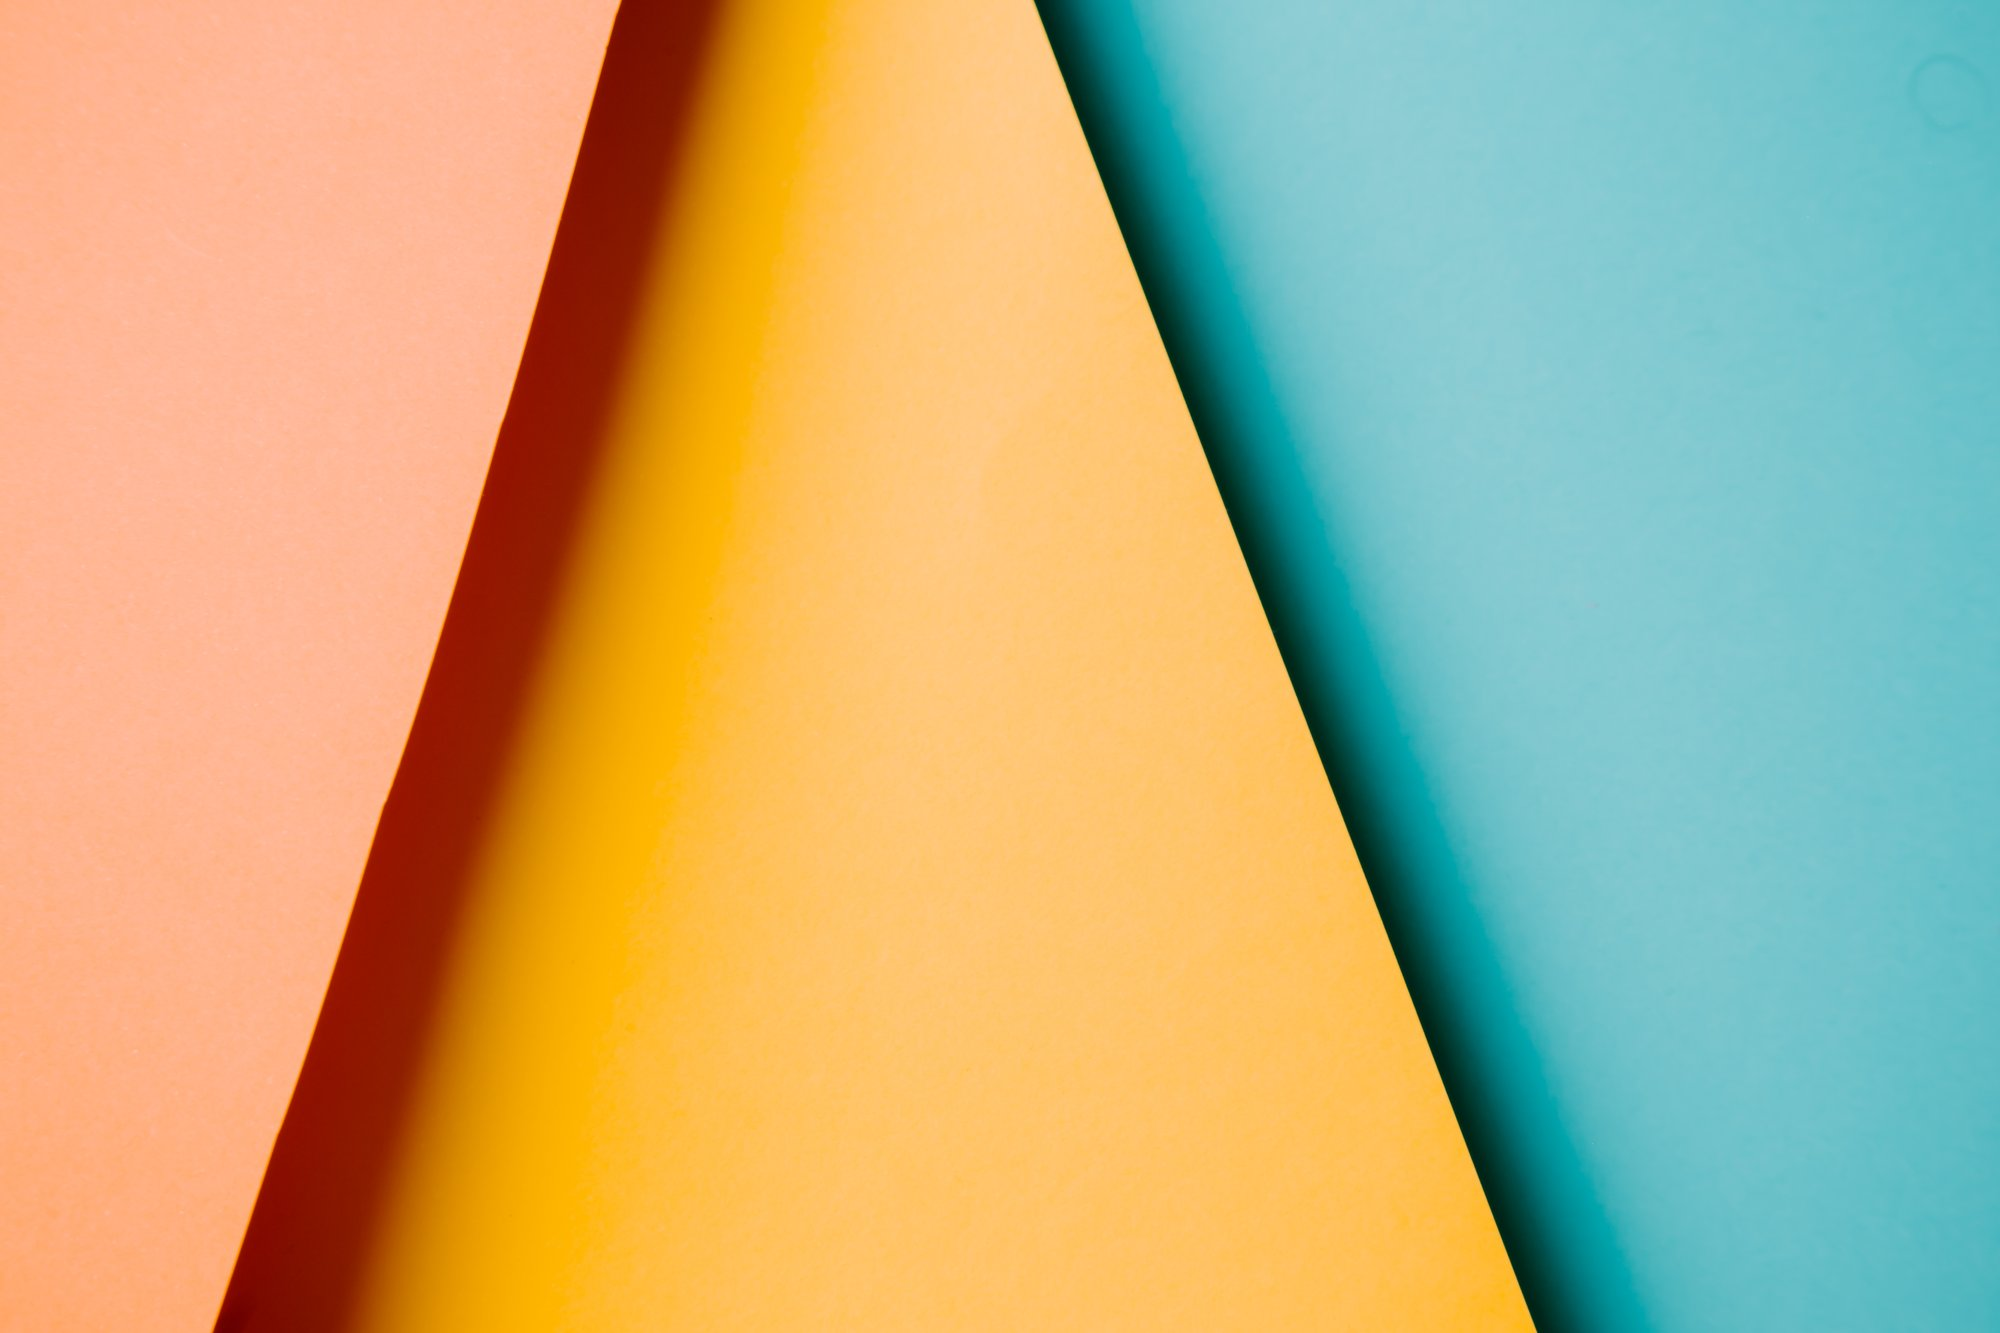 abstract triangles of red orange and blue 红色、橙色和蓝色的抽象三角形